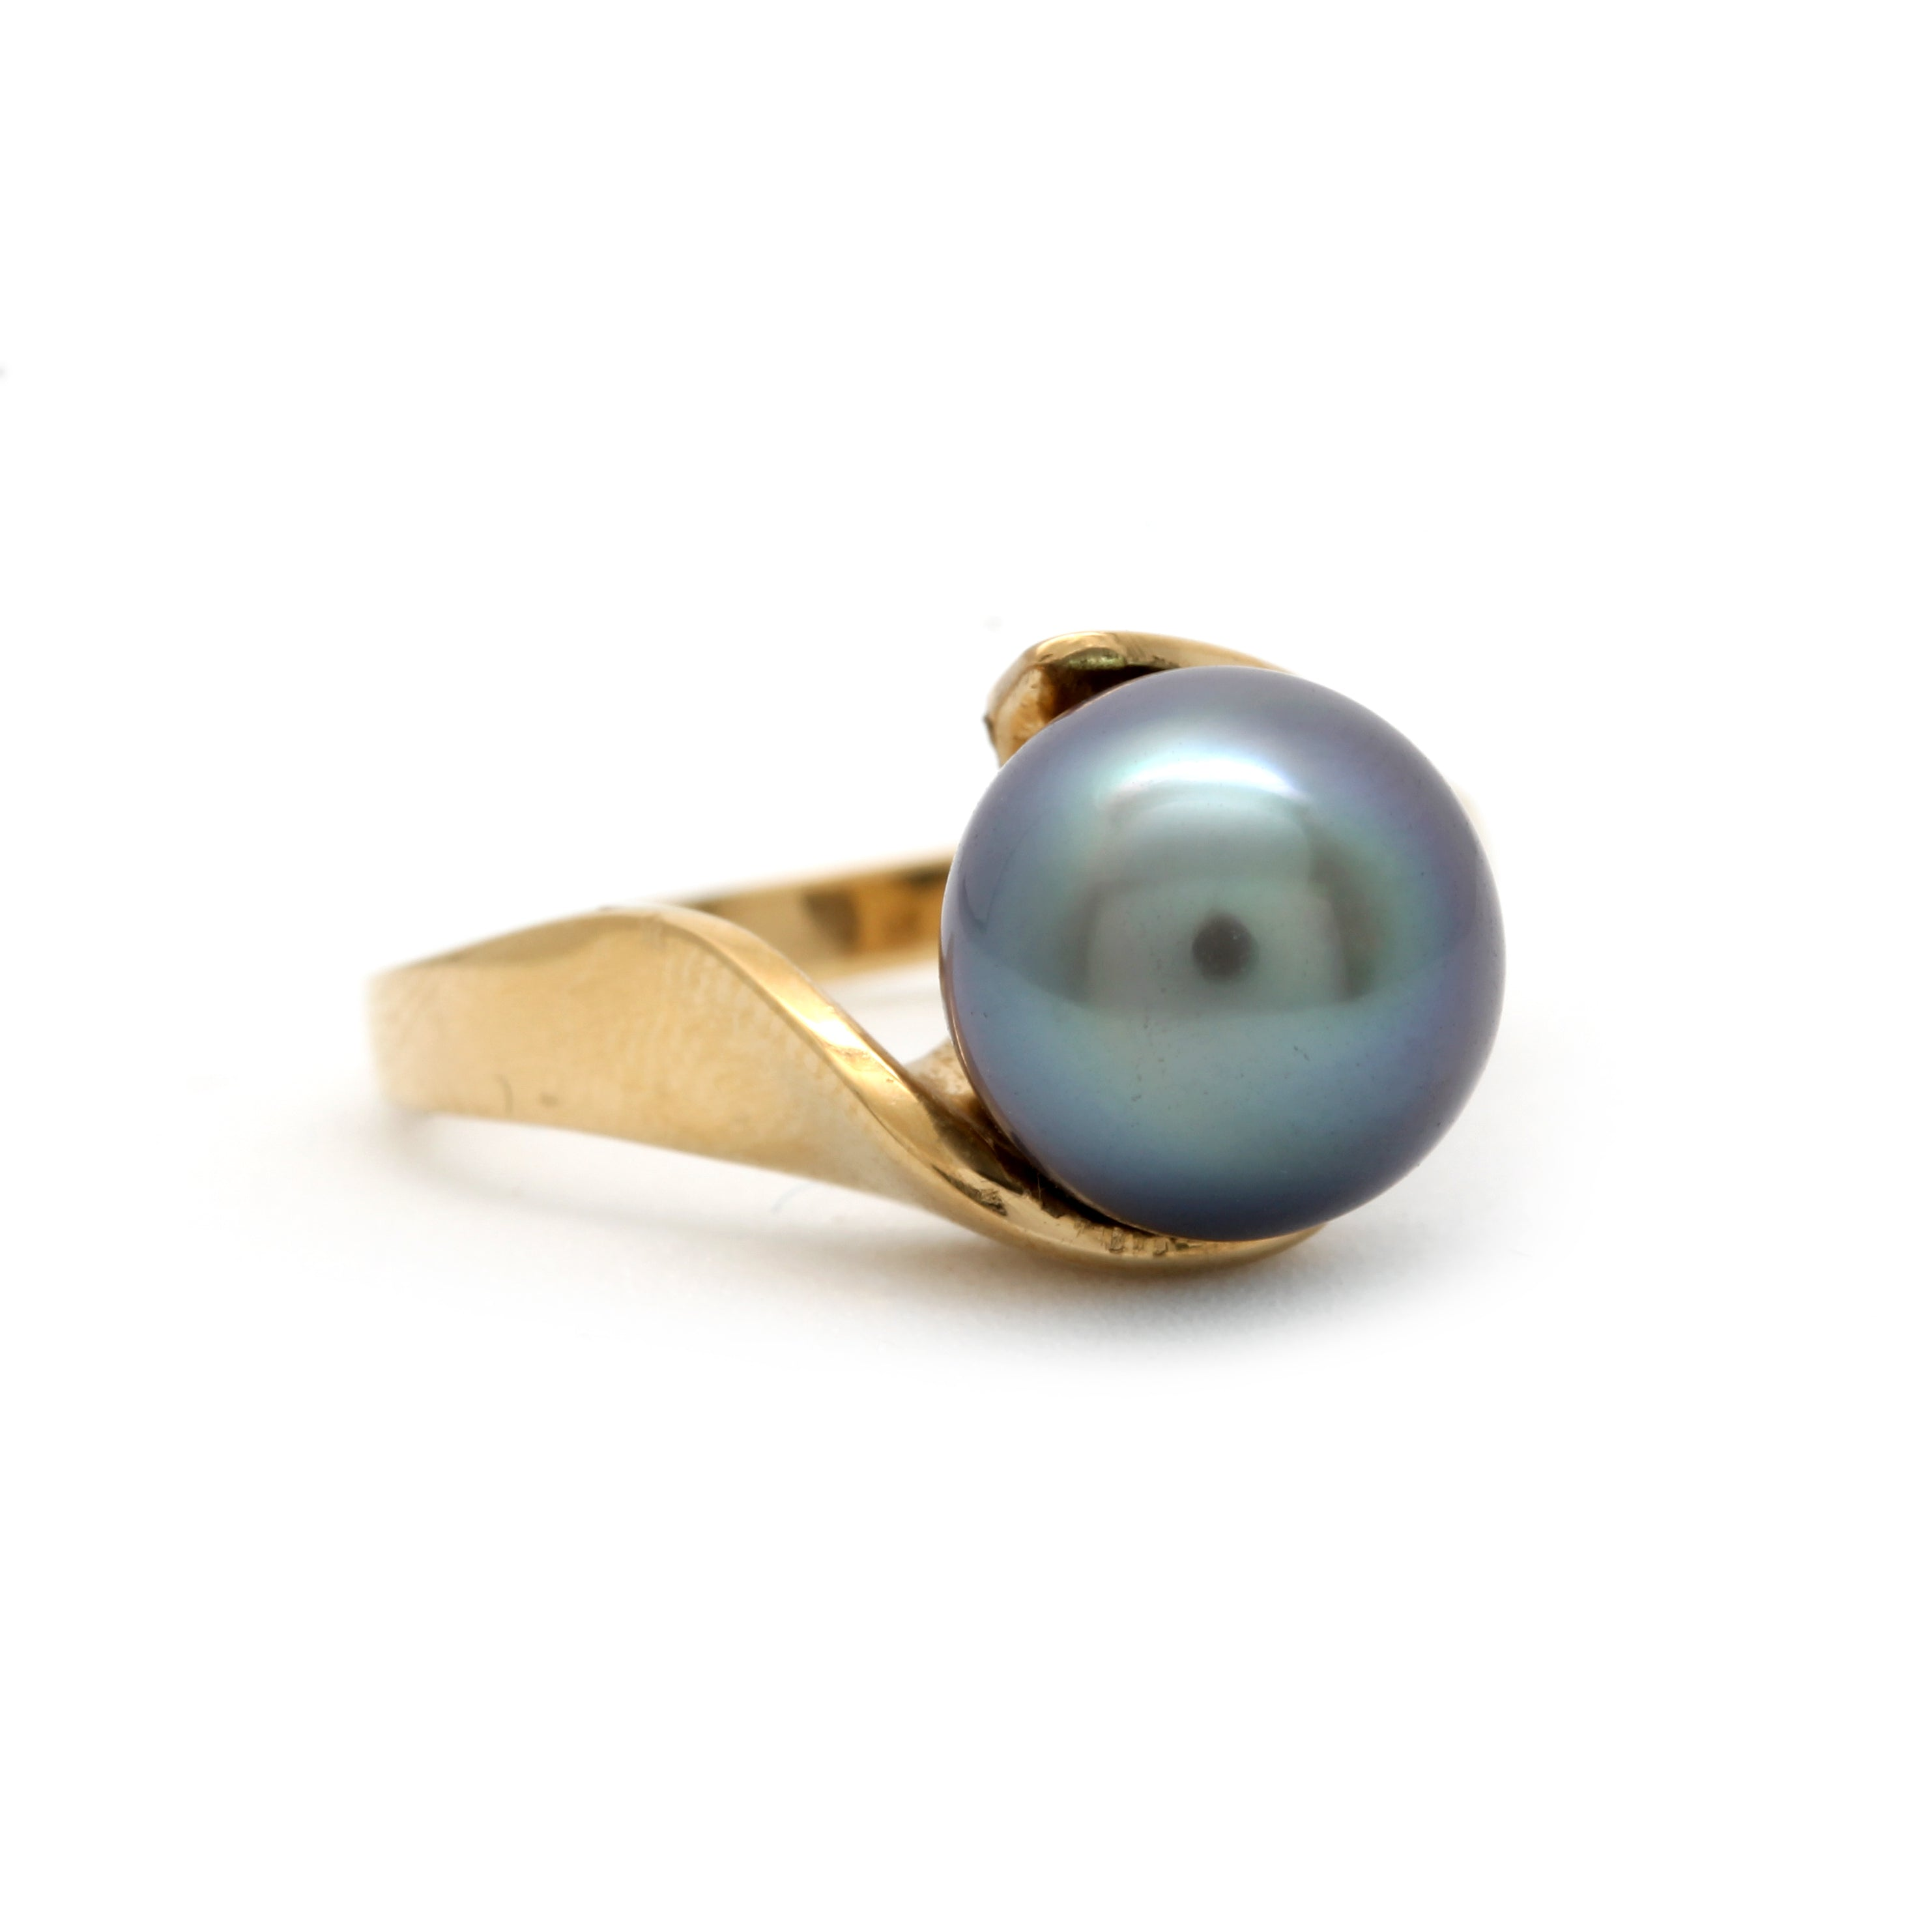 18K Yellow Gold Ring with 2020 Cortez Pearl